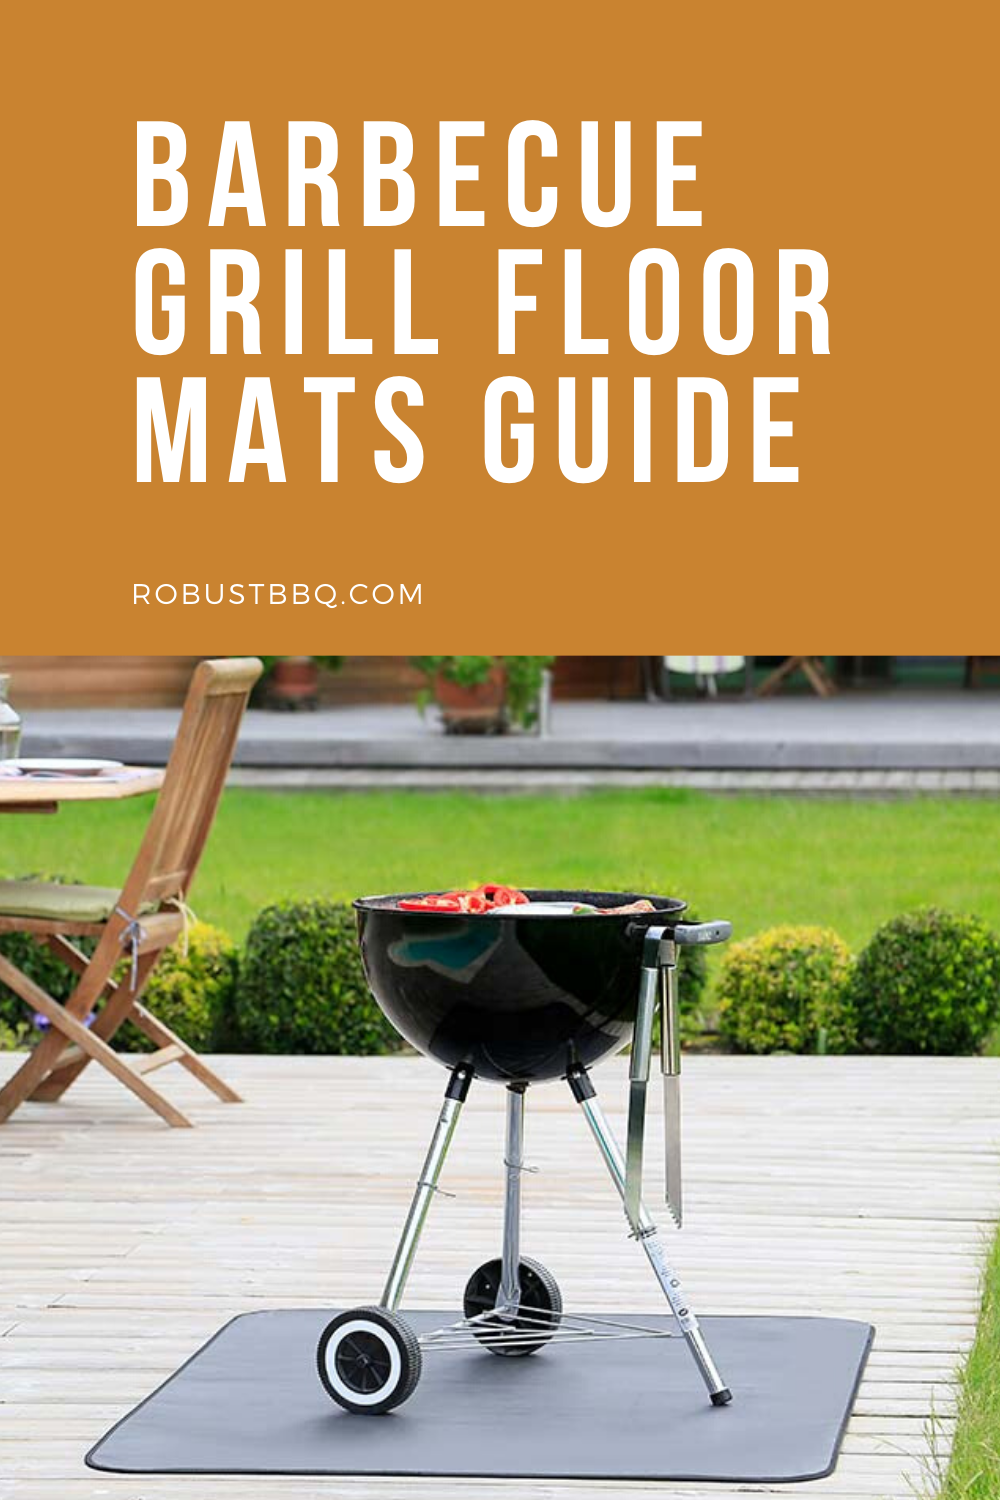 Barbecue Grill Floor Mats Guide Protect Your Deck Patio Or Garage Floor From Water Sauce Grease And Oil With These Barbecue Gr Grillen